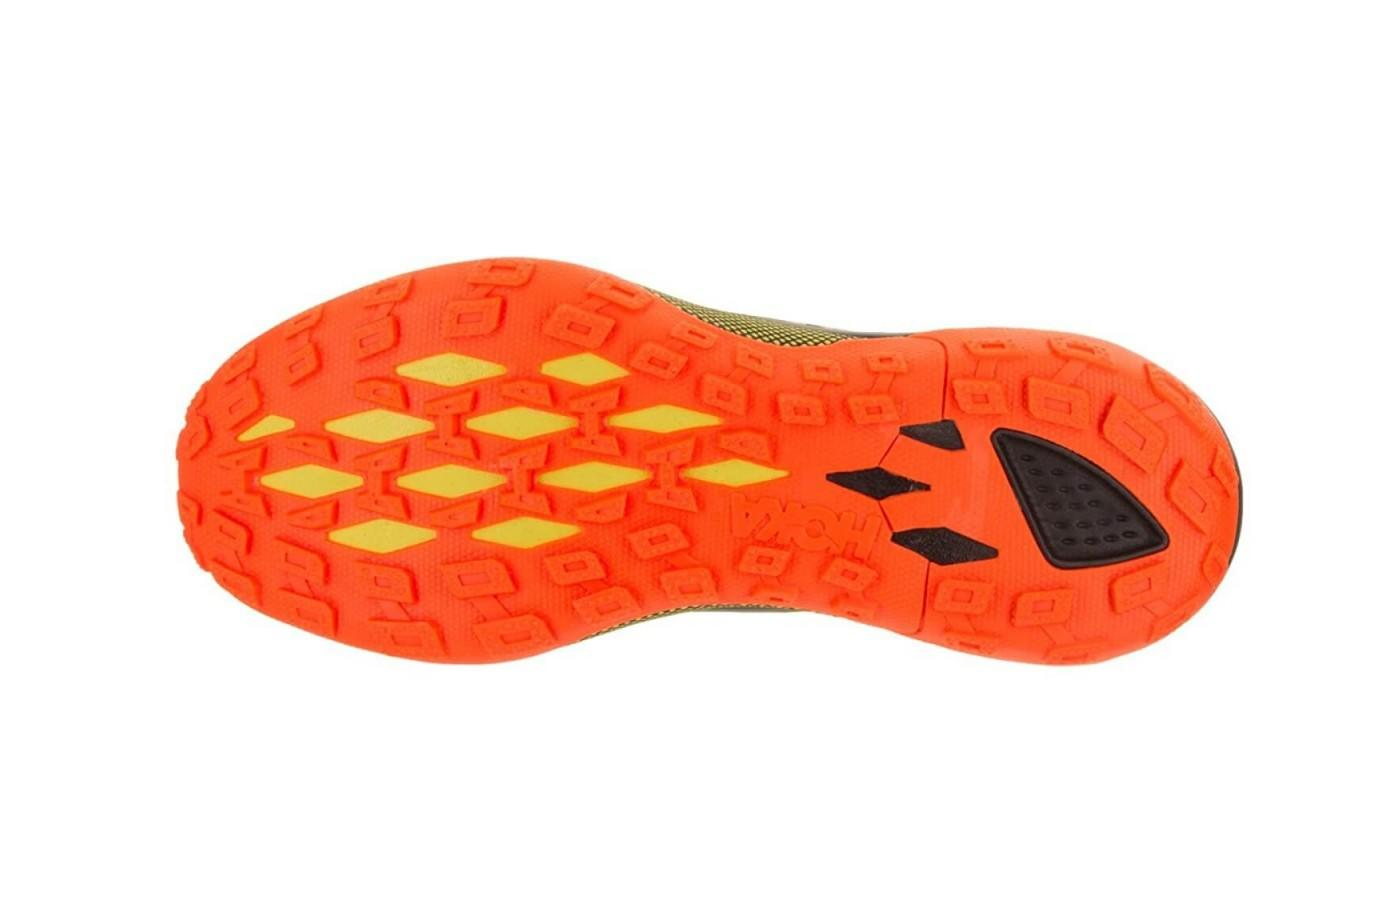 the Hoka One One Speed Instinct 2 features tenacious multi-directional lugs